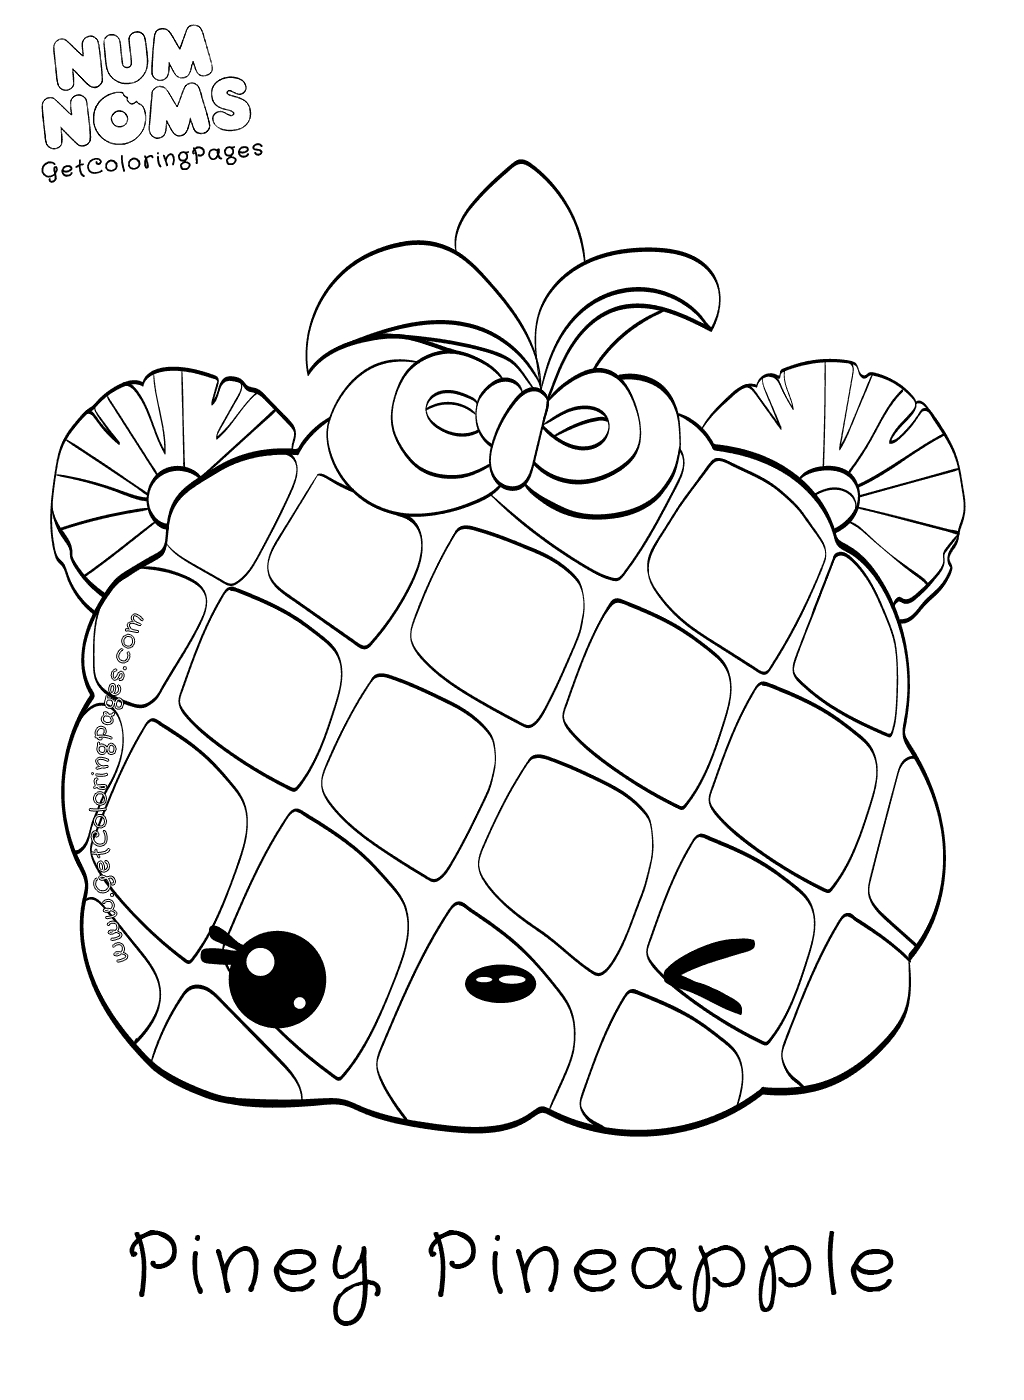 Free Candy Corn Coloring Pages